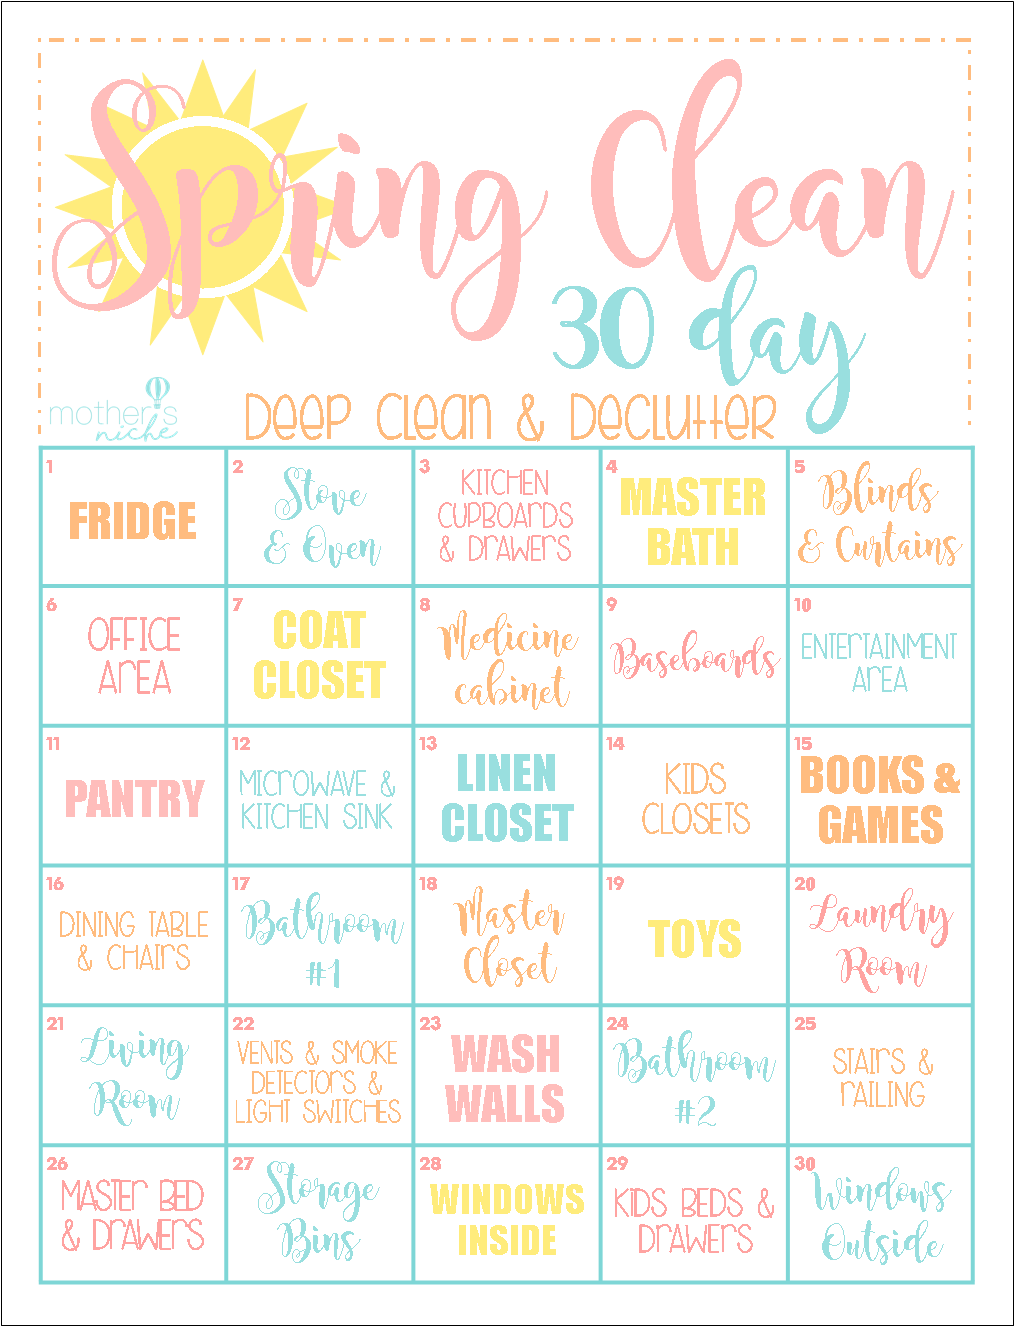 A Fun Way To Deep Clean Your Home In 30 Days Use This Day Spring Cleaning Schedule Guide And Motivate You House Within The Next Month